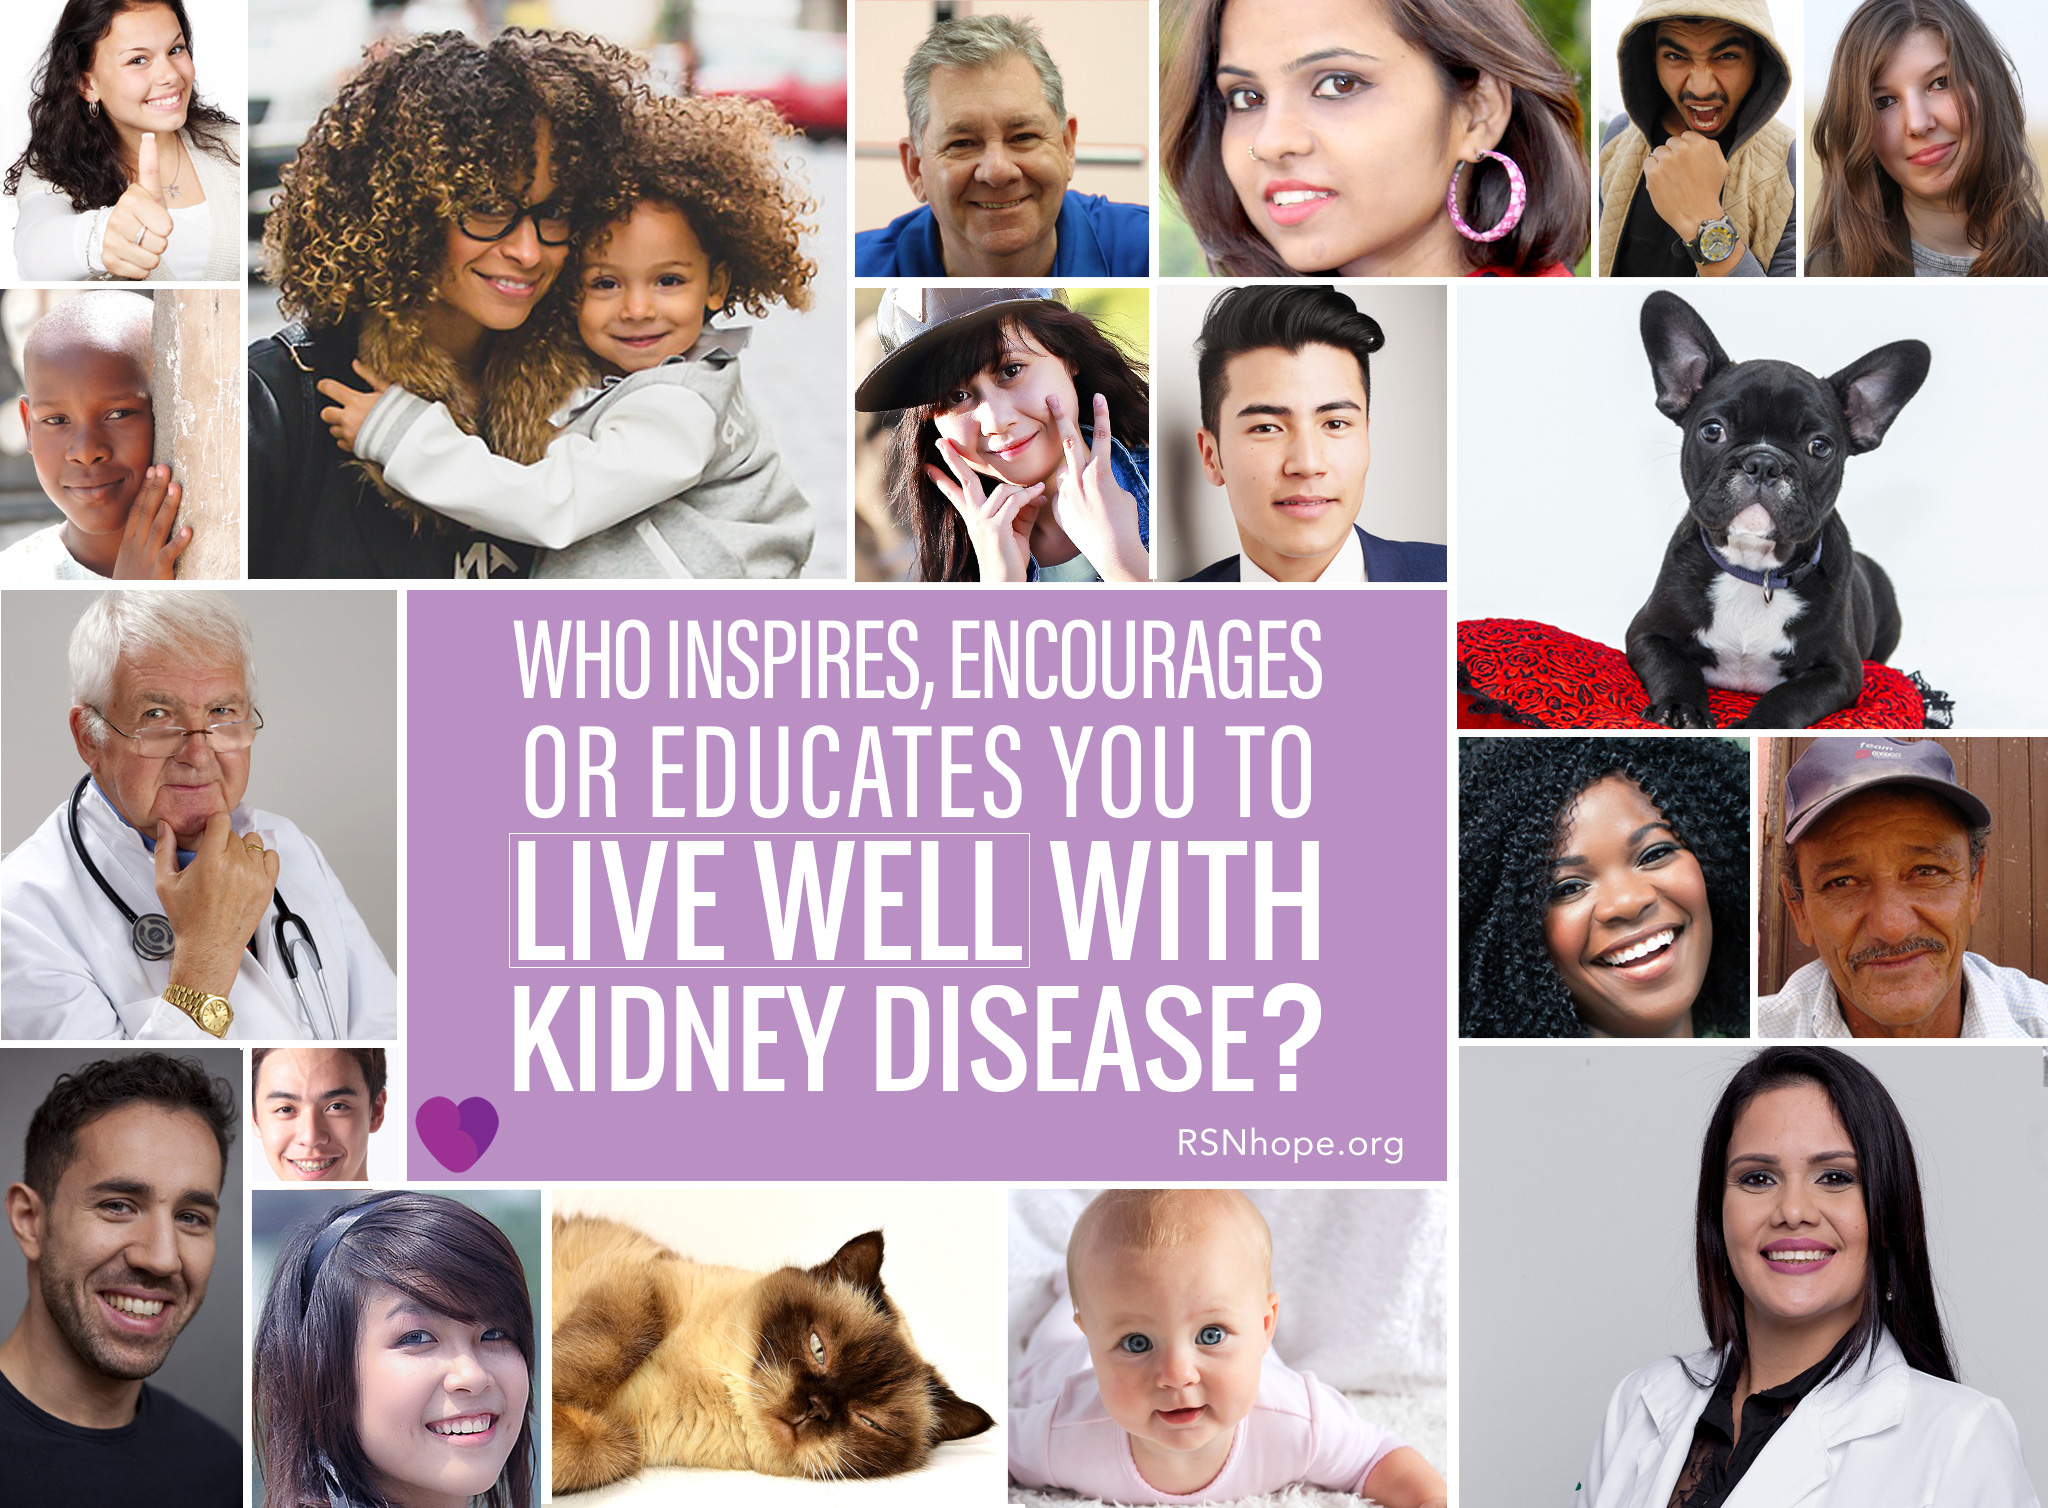 2018-Essay-Contest-Kidney-Disease